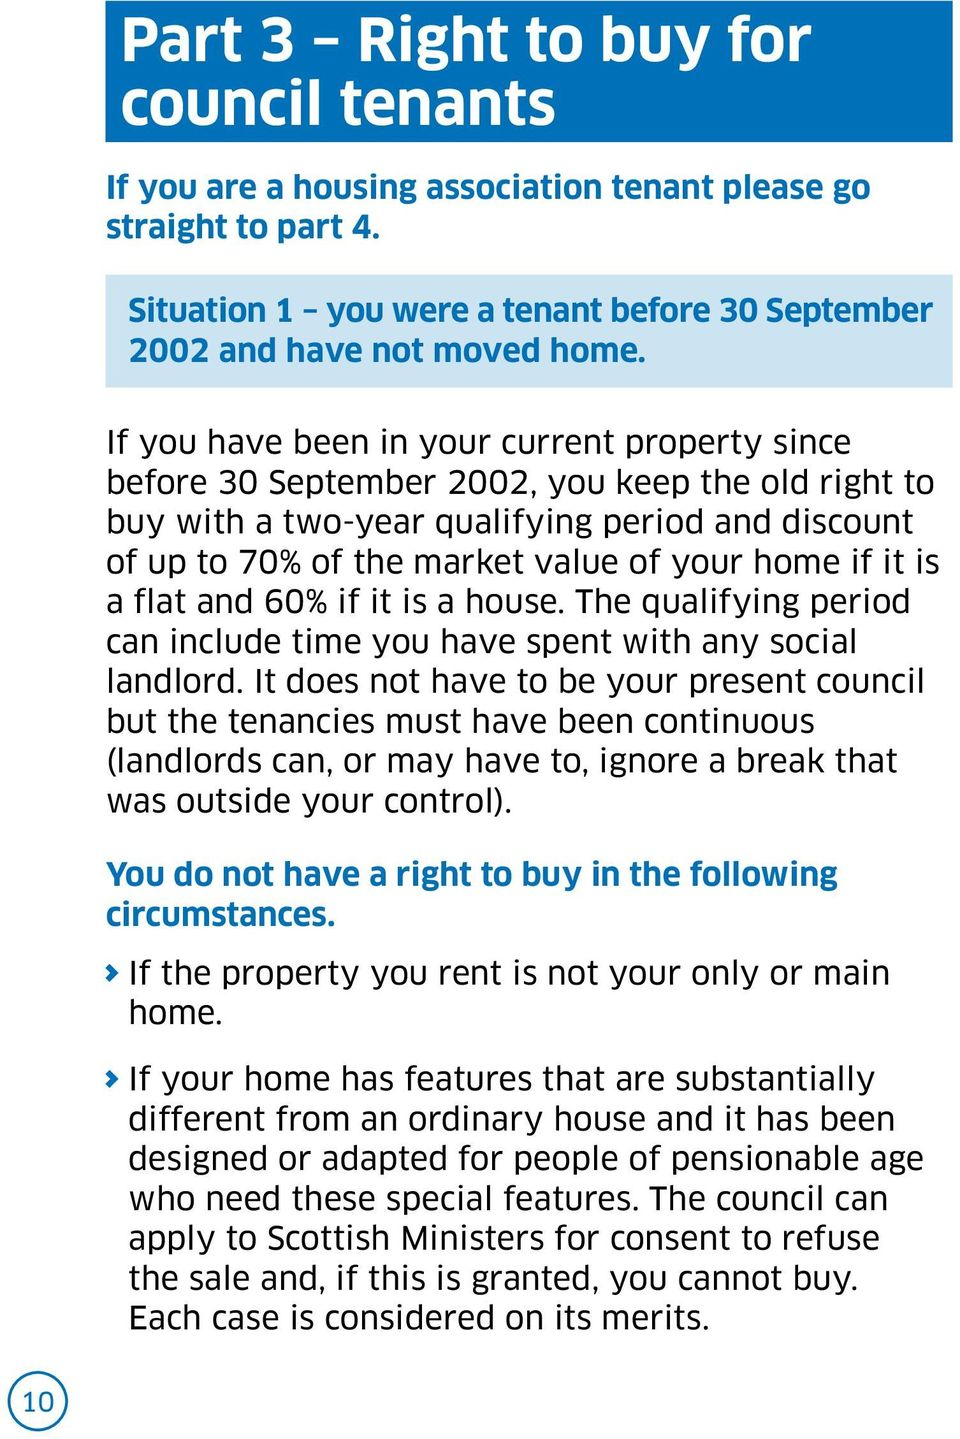 it is a flat and 60% if it is a house. The qualifying period can include time you have spent with any social landlord.